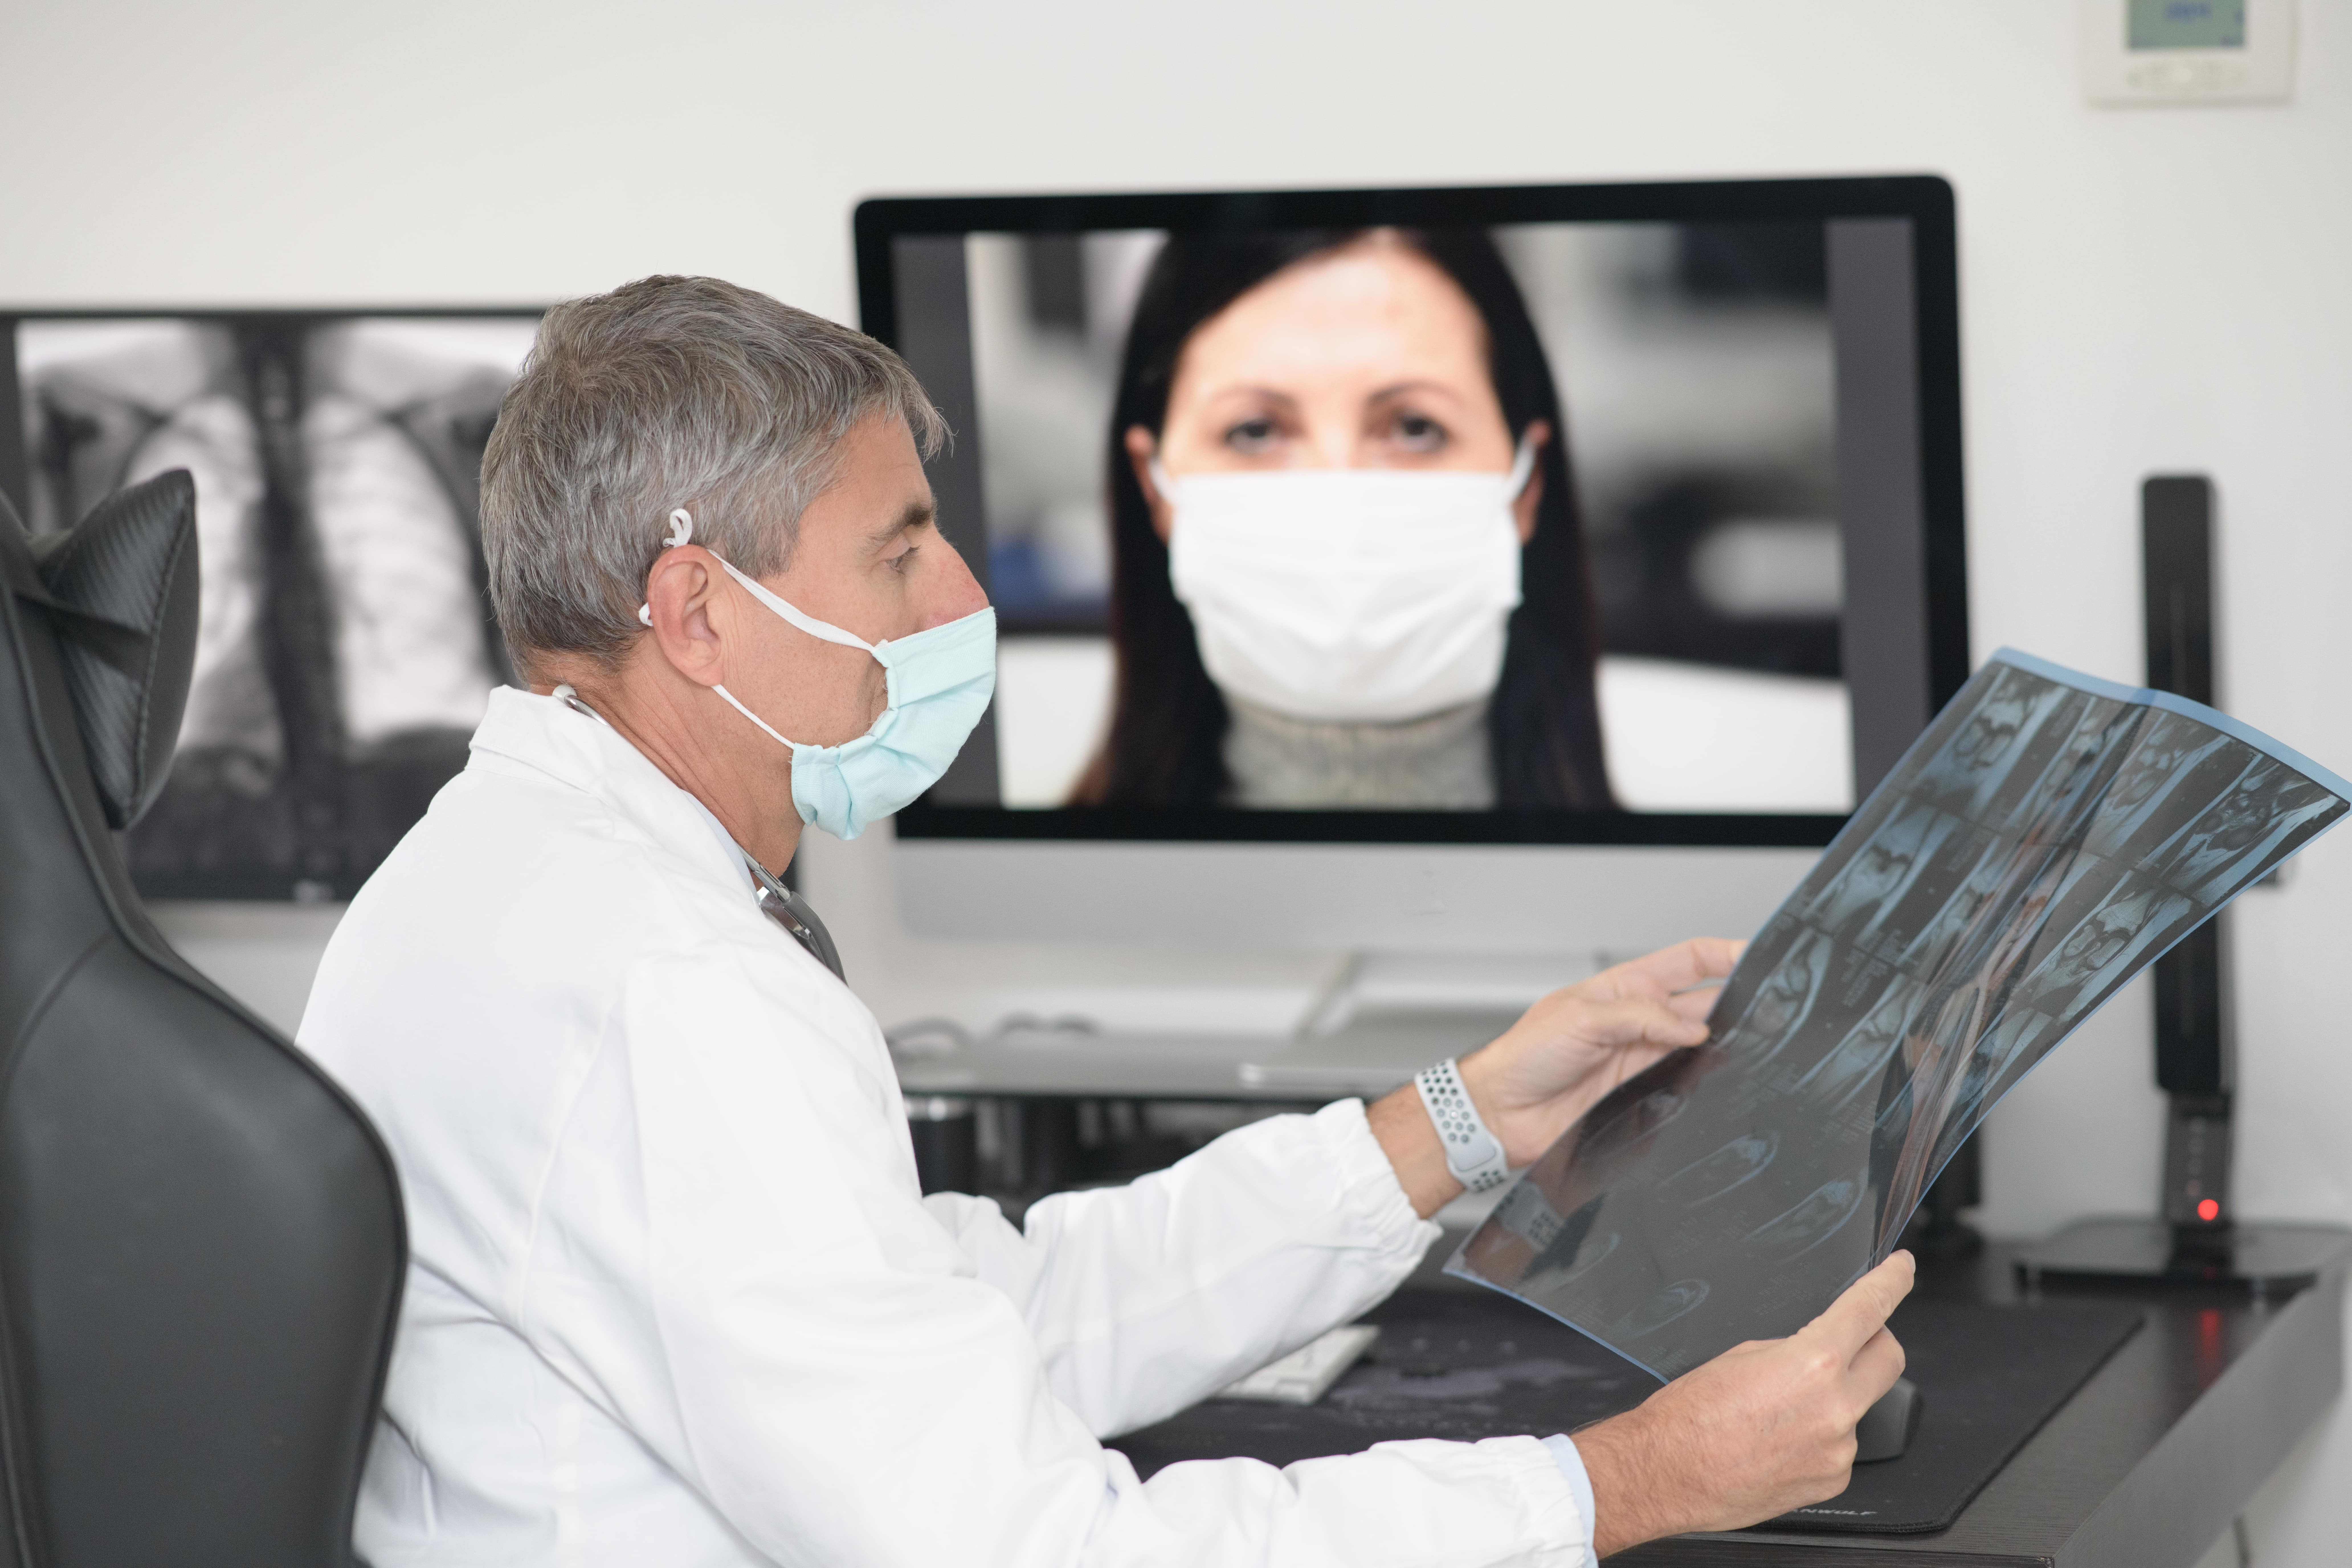 A doctor uses video conferencing for telehealth